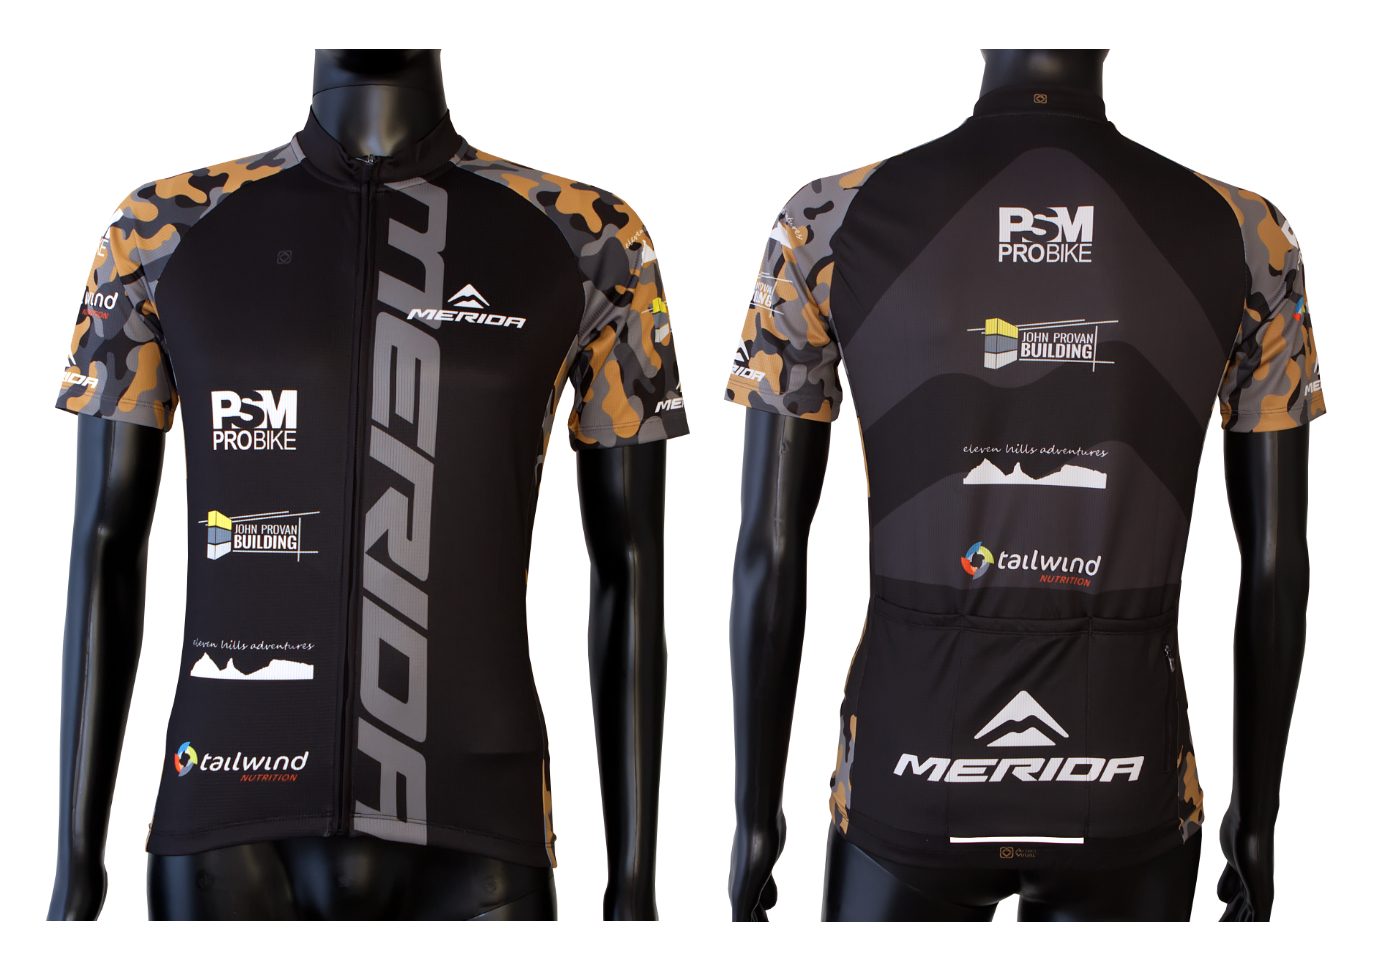 custom designed Merida race jersey